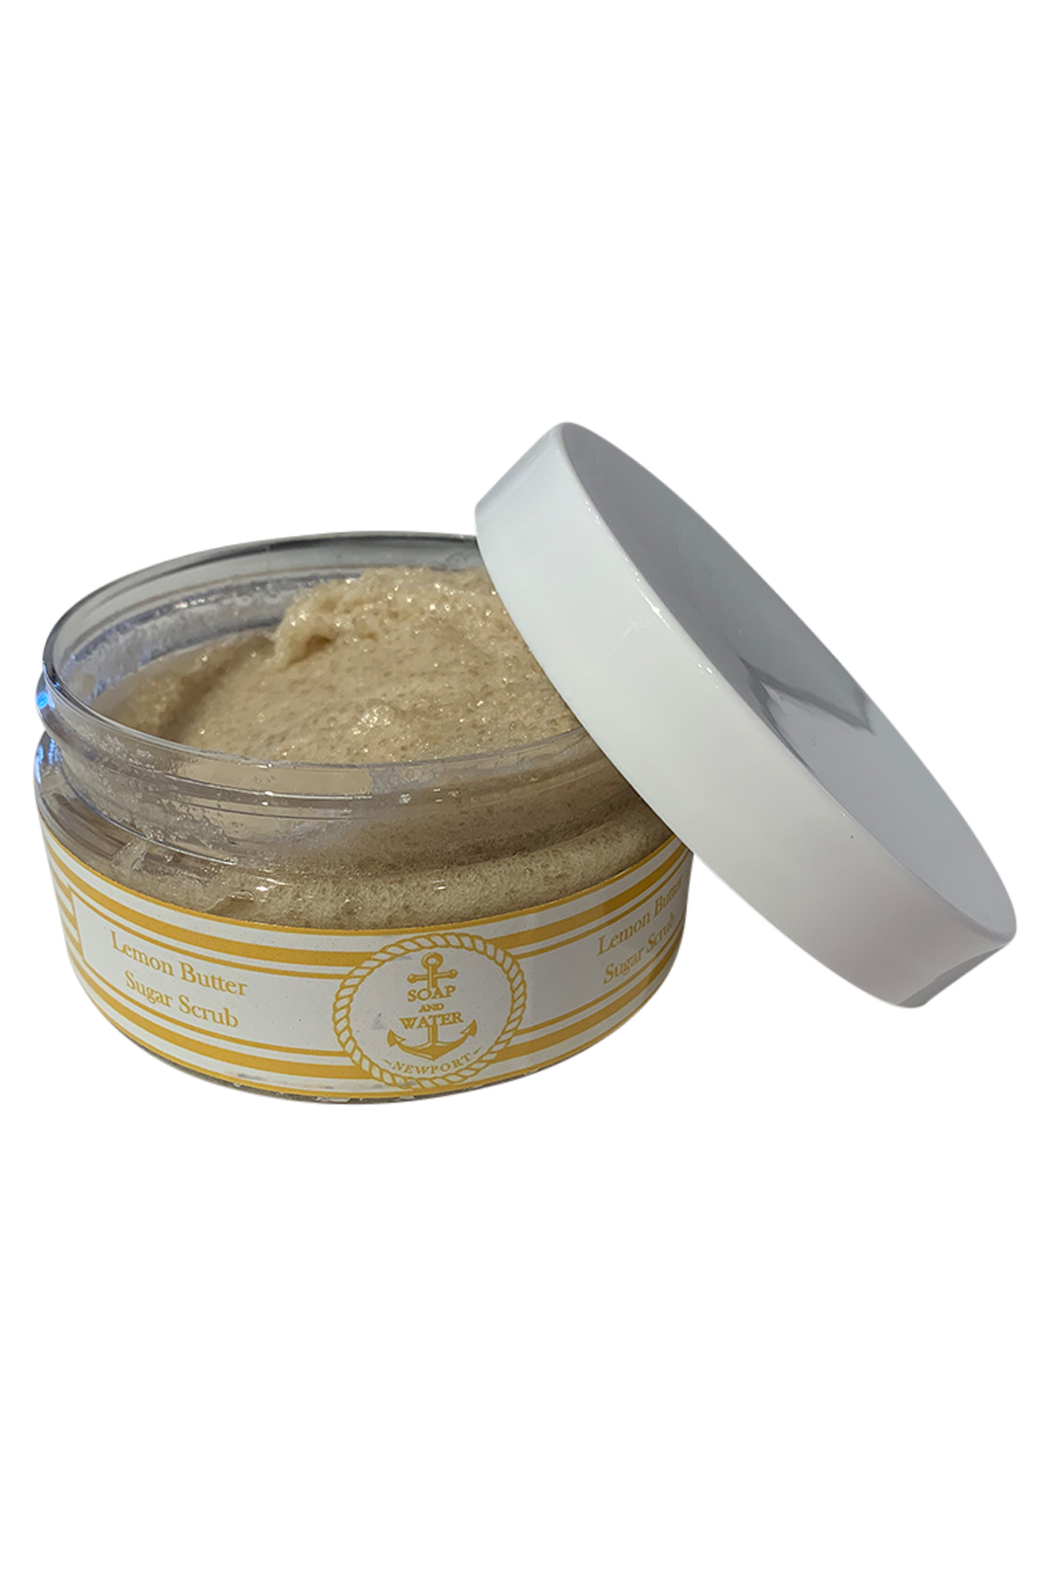 Soap and Water Newport LEMON BUTTER BROWN SUGAR SCRUB - Front Cropped Image